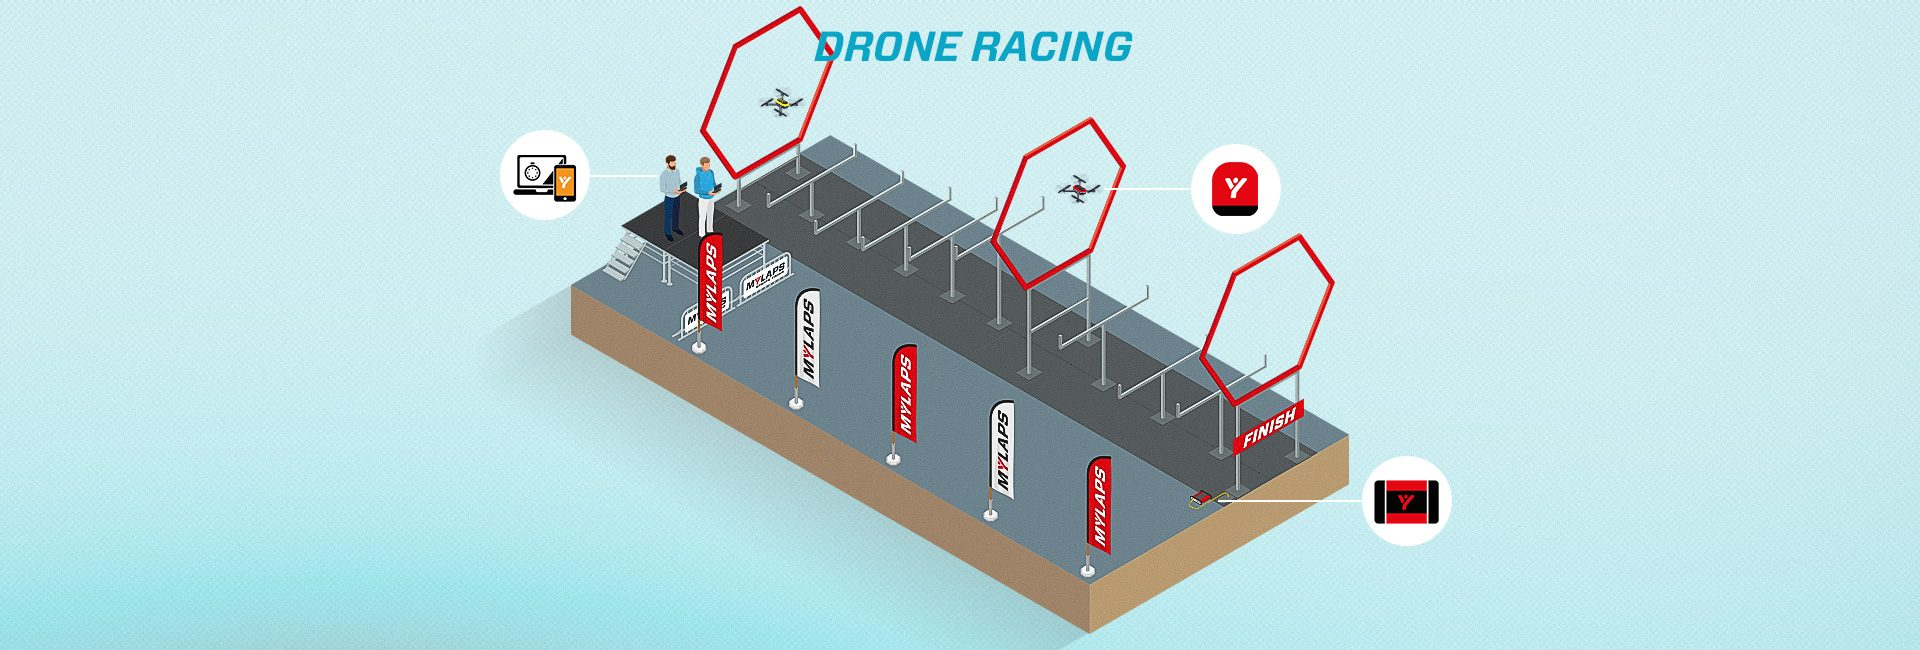 RC & Drone Racing